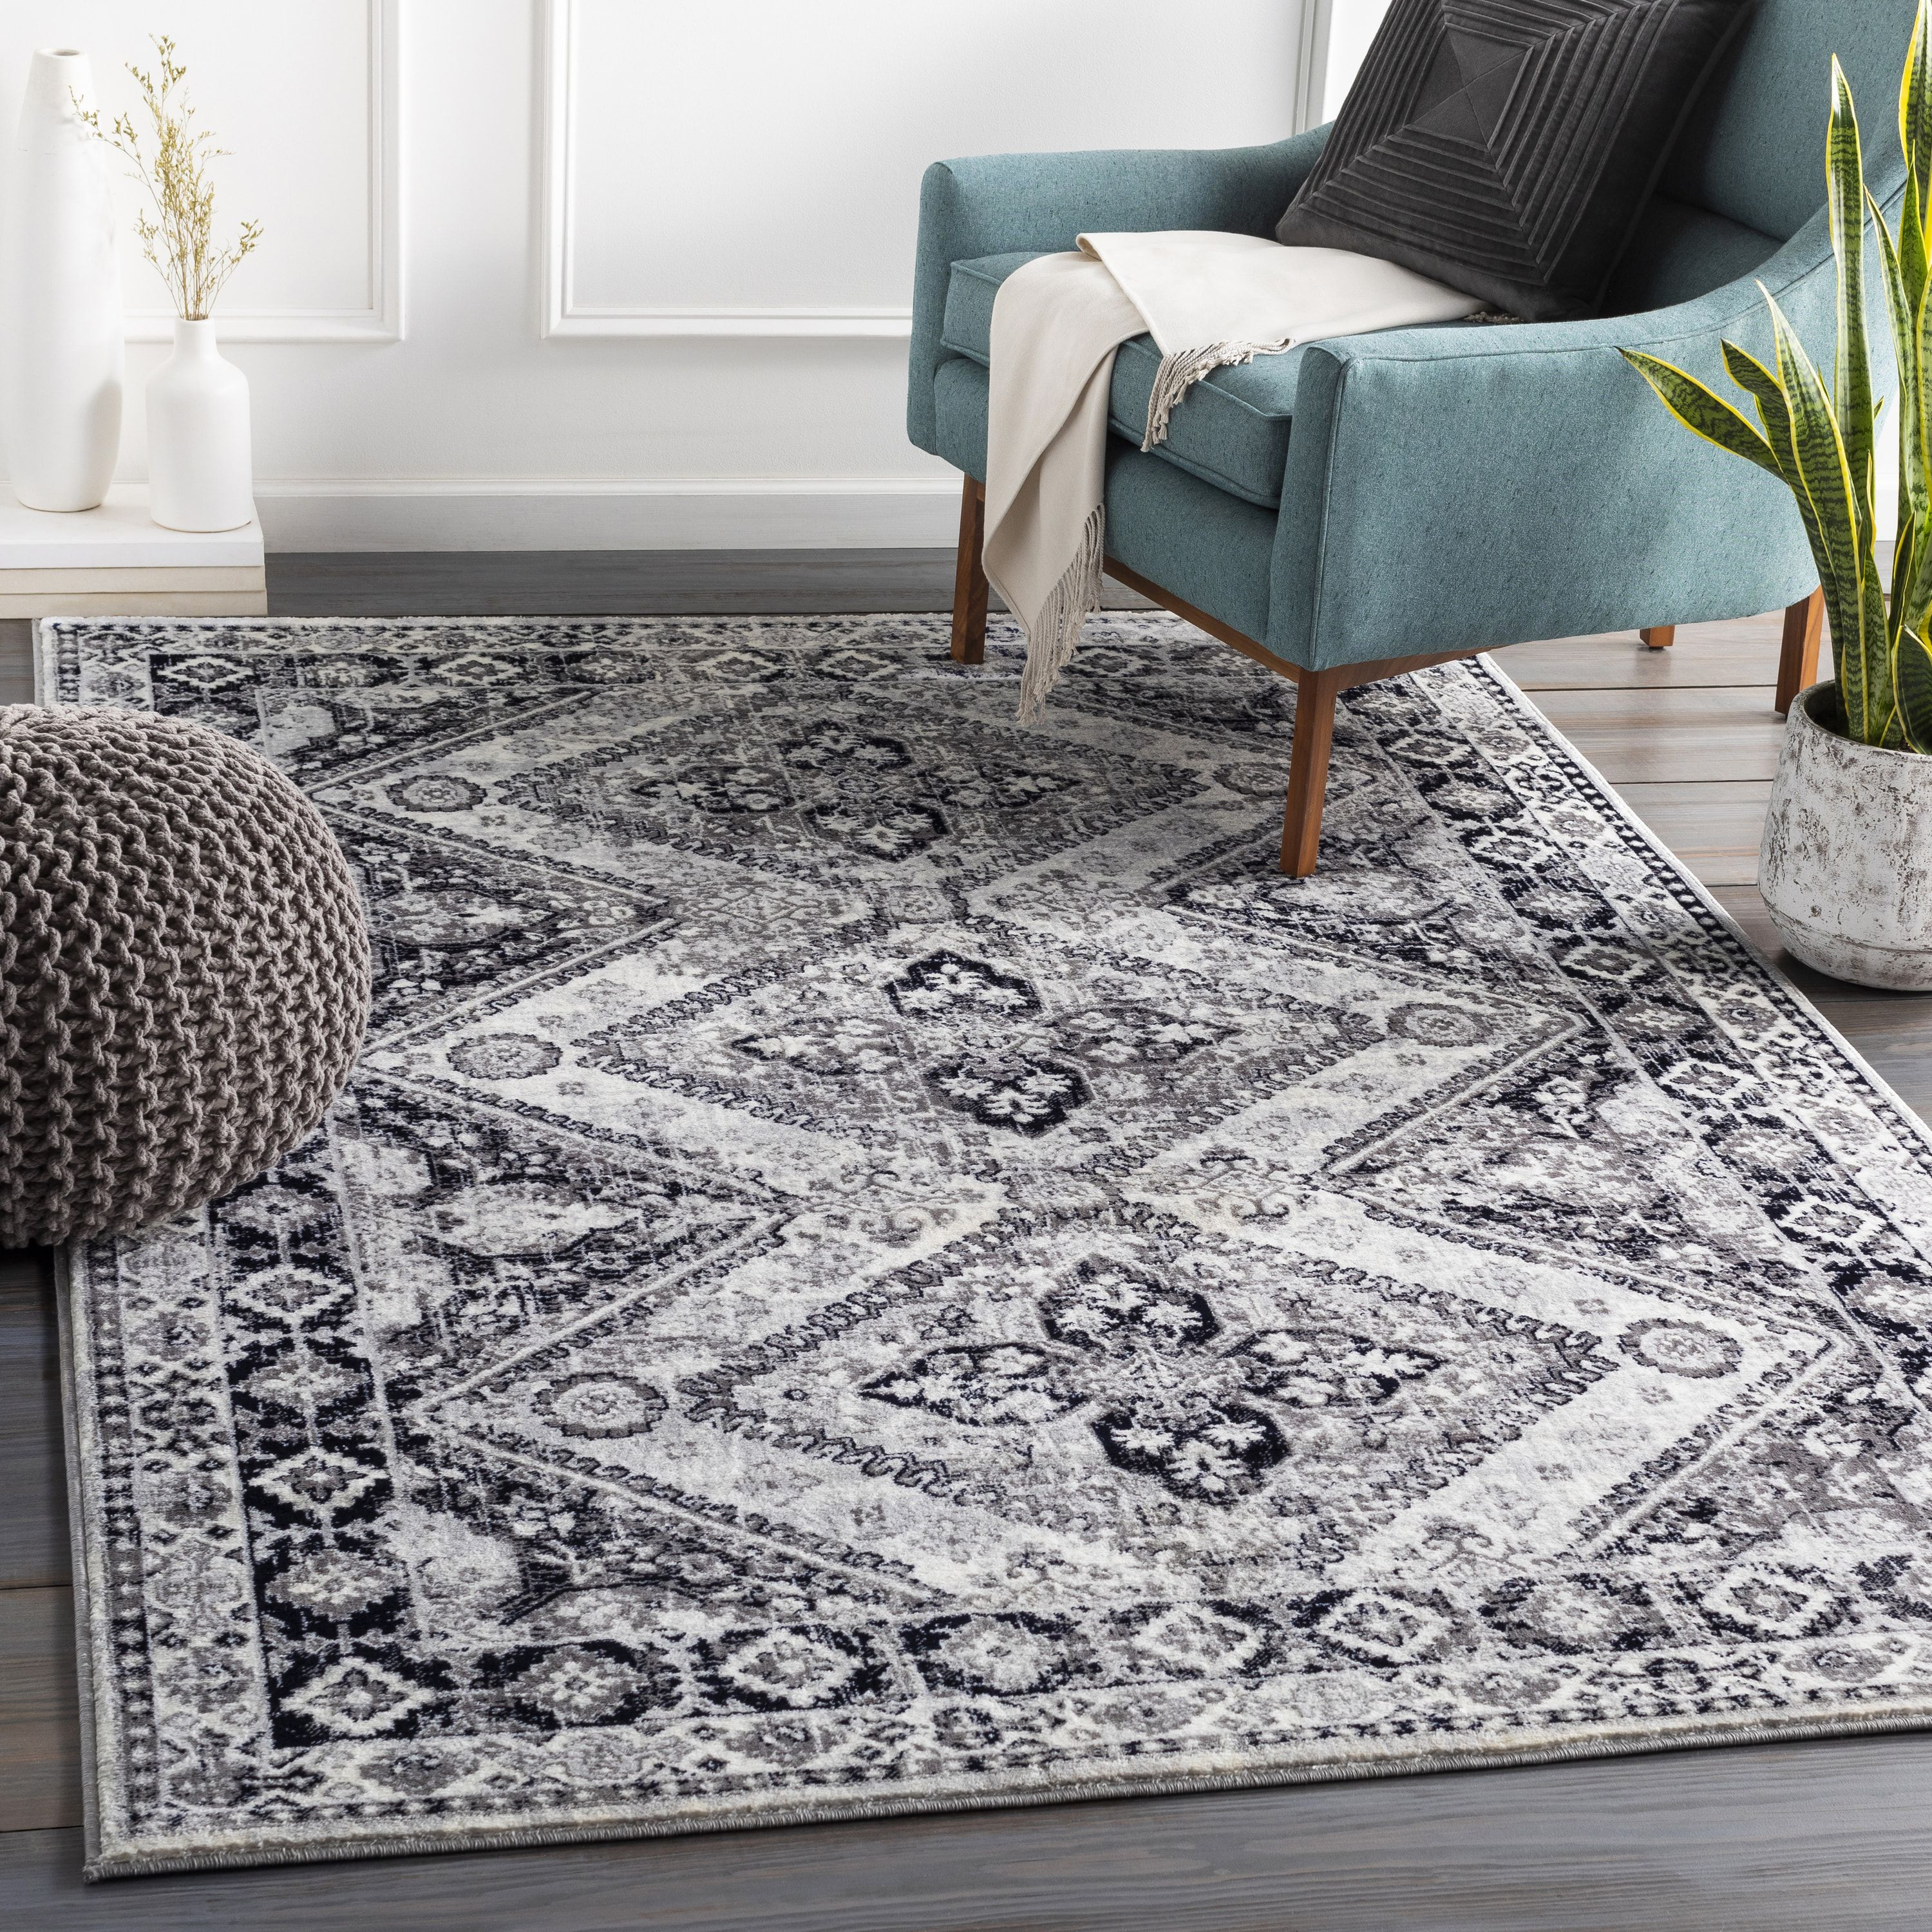 Wnl 2313 Rug Color Charcoal Navy Silver Gray White Black Size 9 3 X 12 3 Area Rugs Rugs Online Home Decor Stores